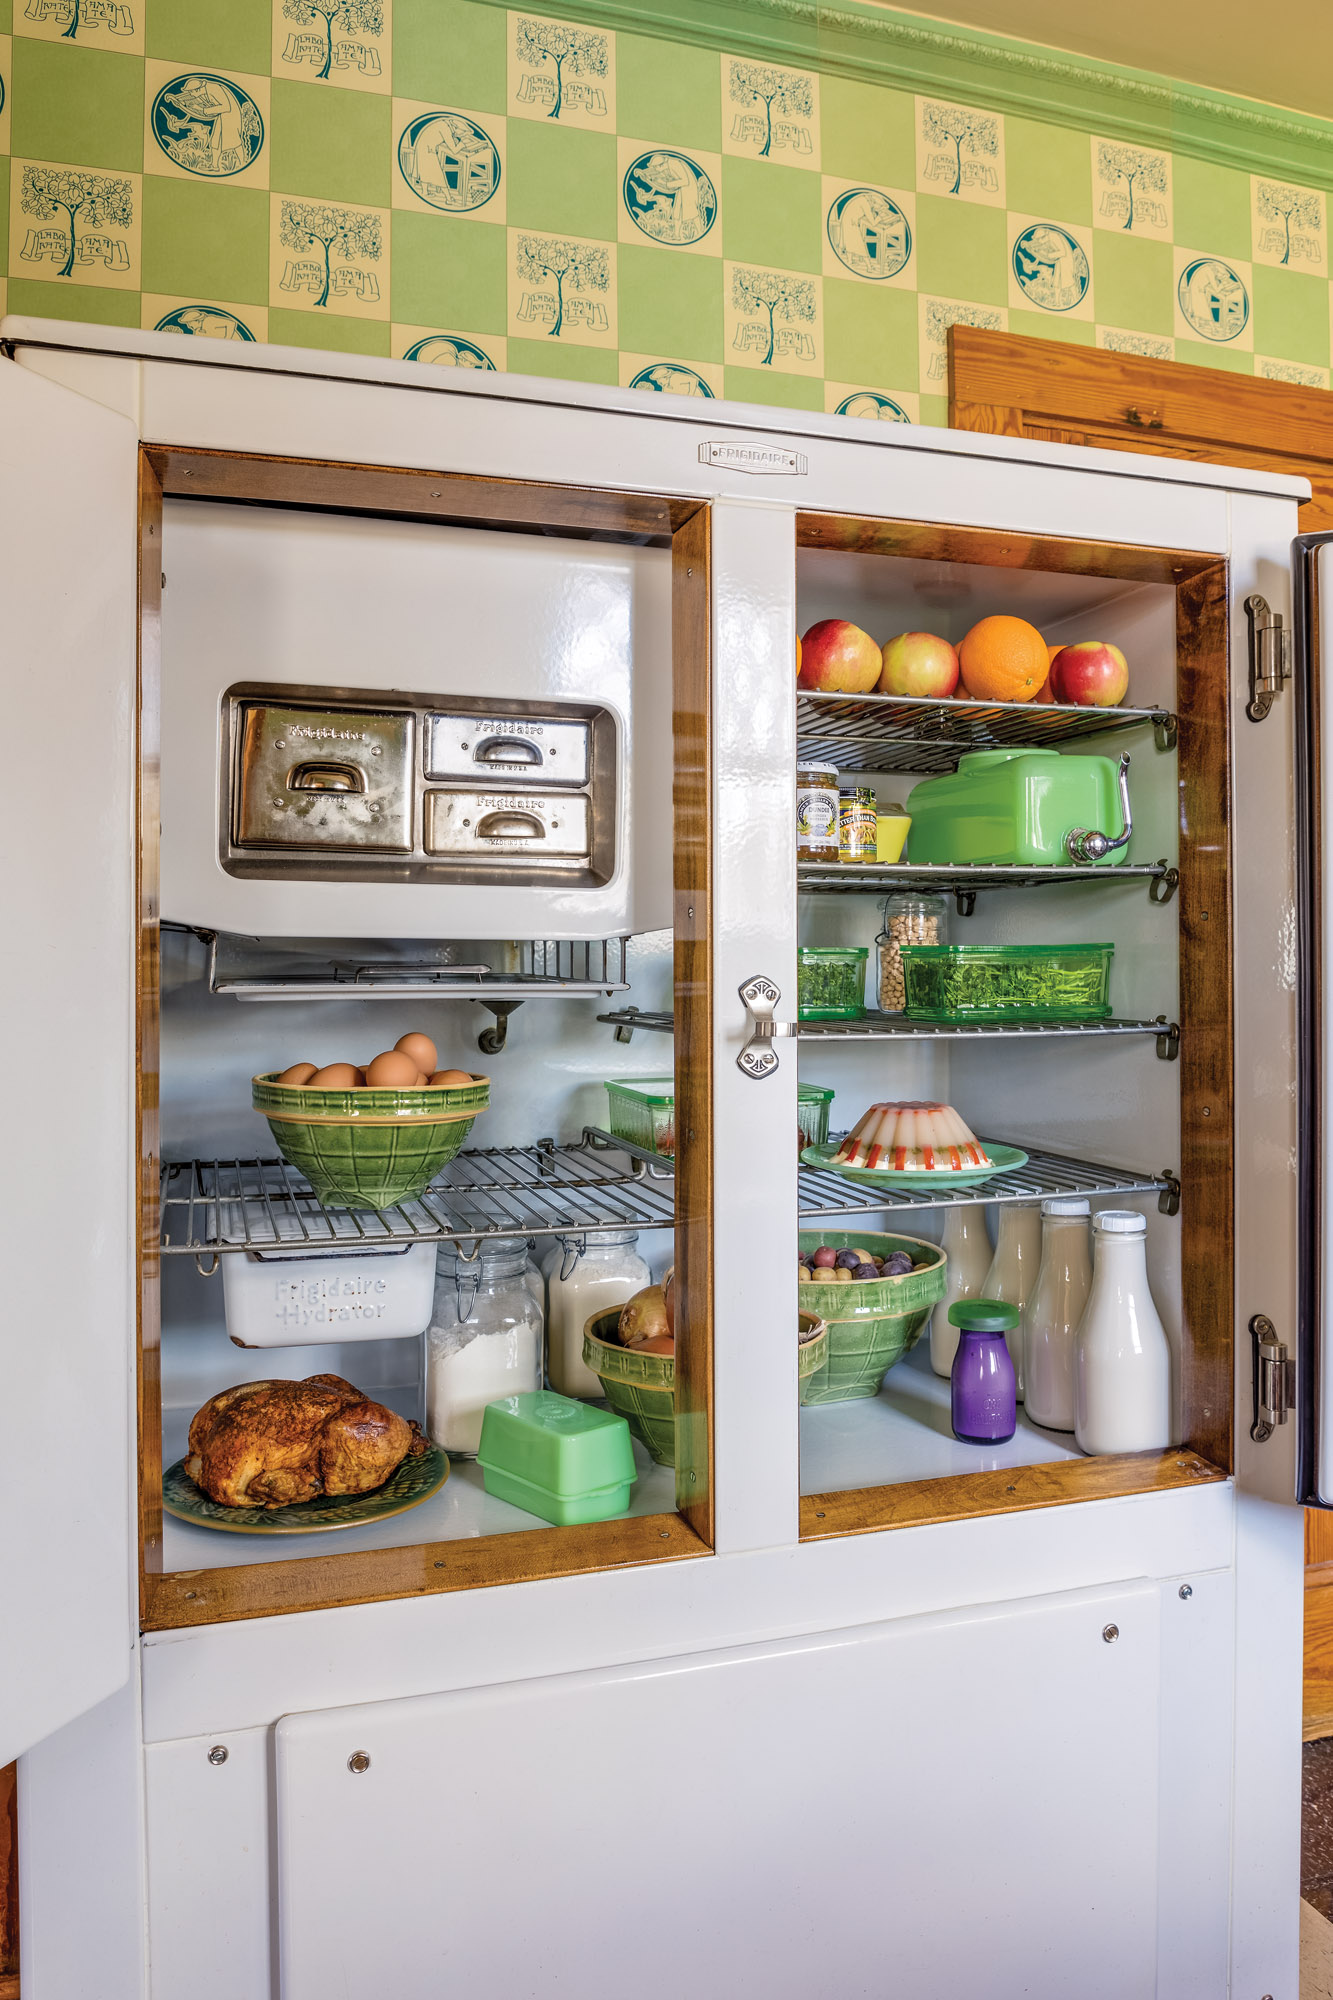 The ca. 1929 Frigidaire was converted for modern refrigerant. McKee Jadeite, McCoy bowls, and Hazel Atlas glassware are vintage.